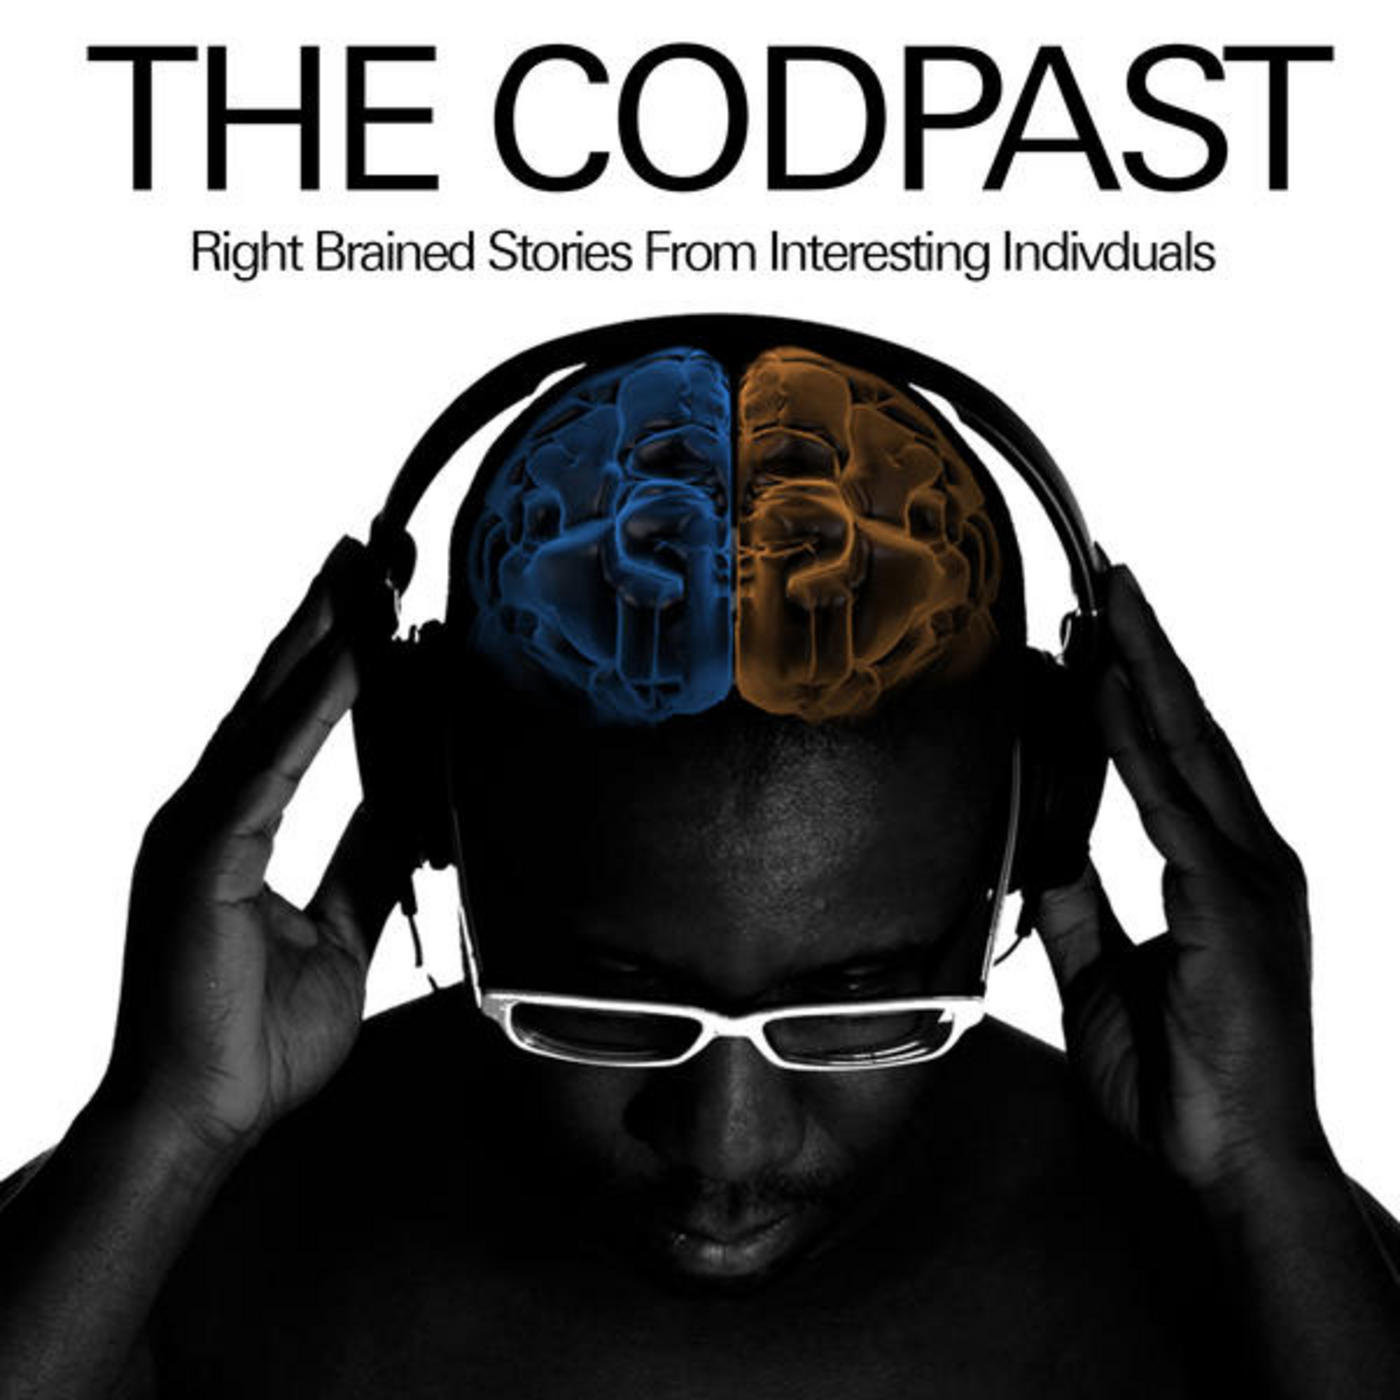 047 - The Codpast Eps 35 - GCHQ's Dyslexic Code Breakers Review All